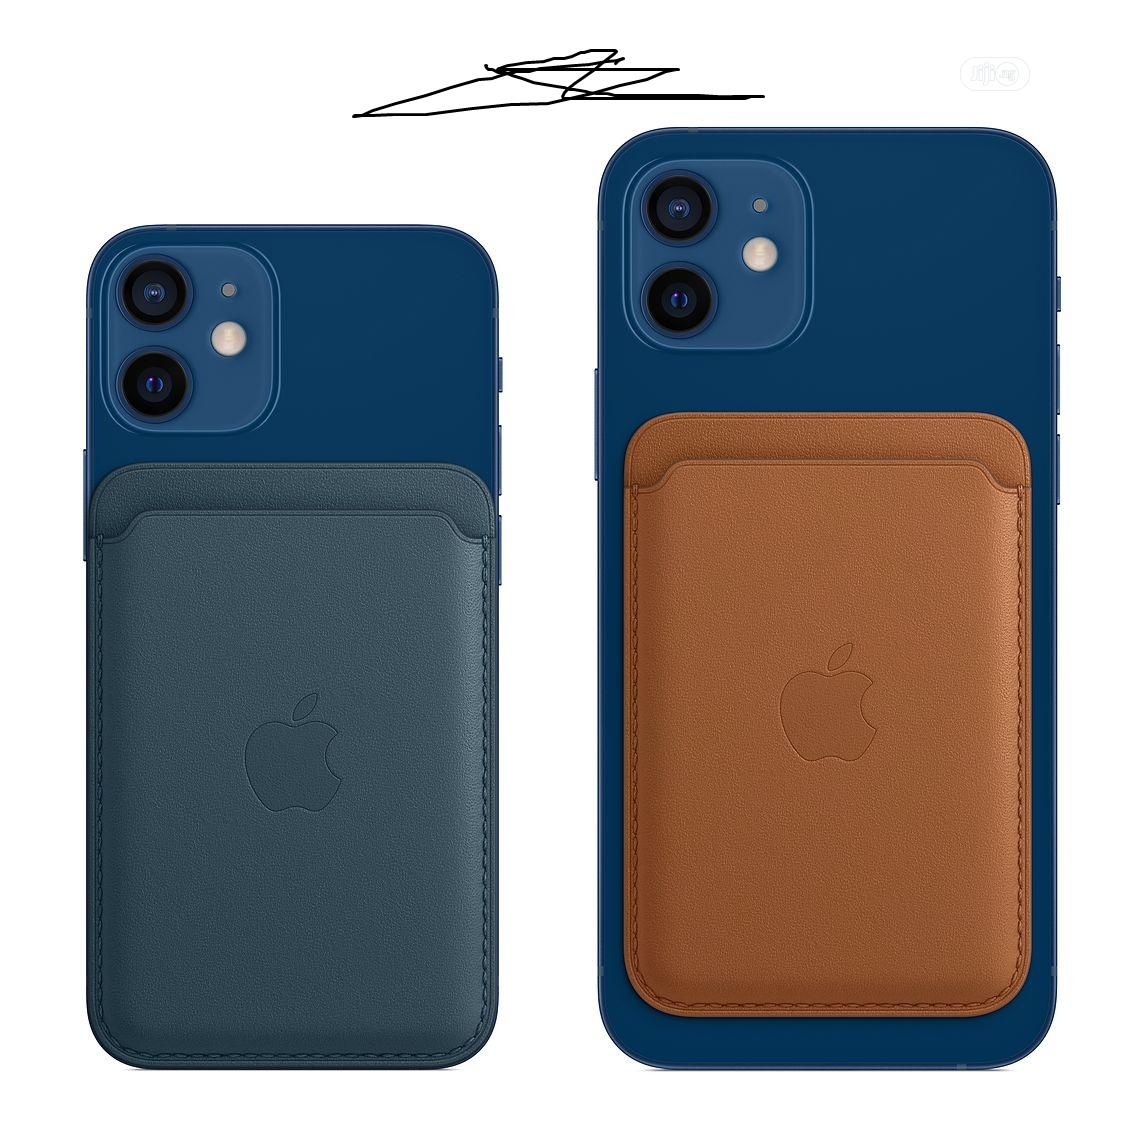 Leather Wallet With Magsafe for iPhone 12 Series   Accessories for Mobile Phones & Tablets for sale in Ikeja, Lagos State, Nigeria